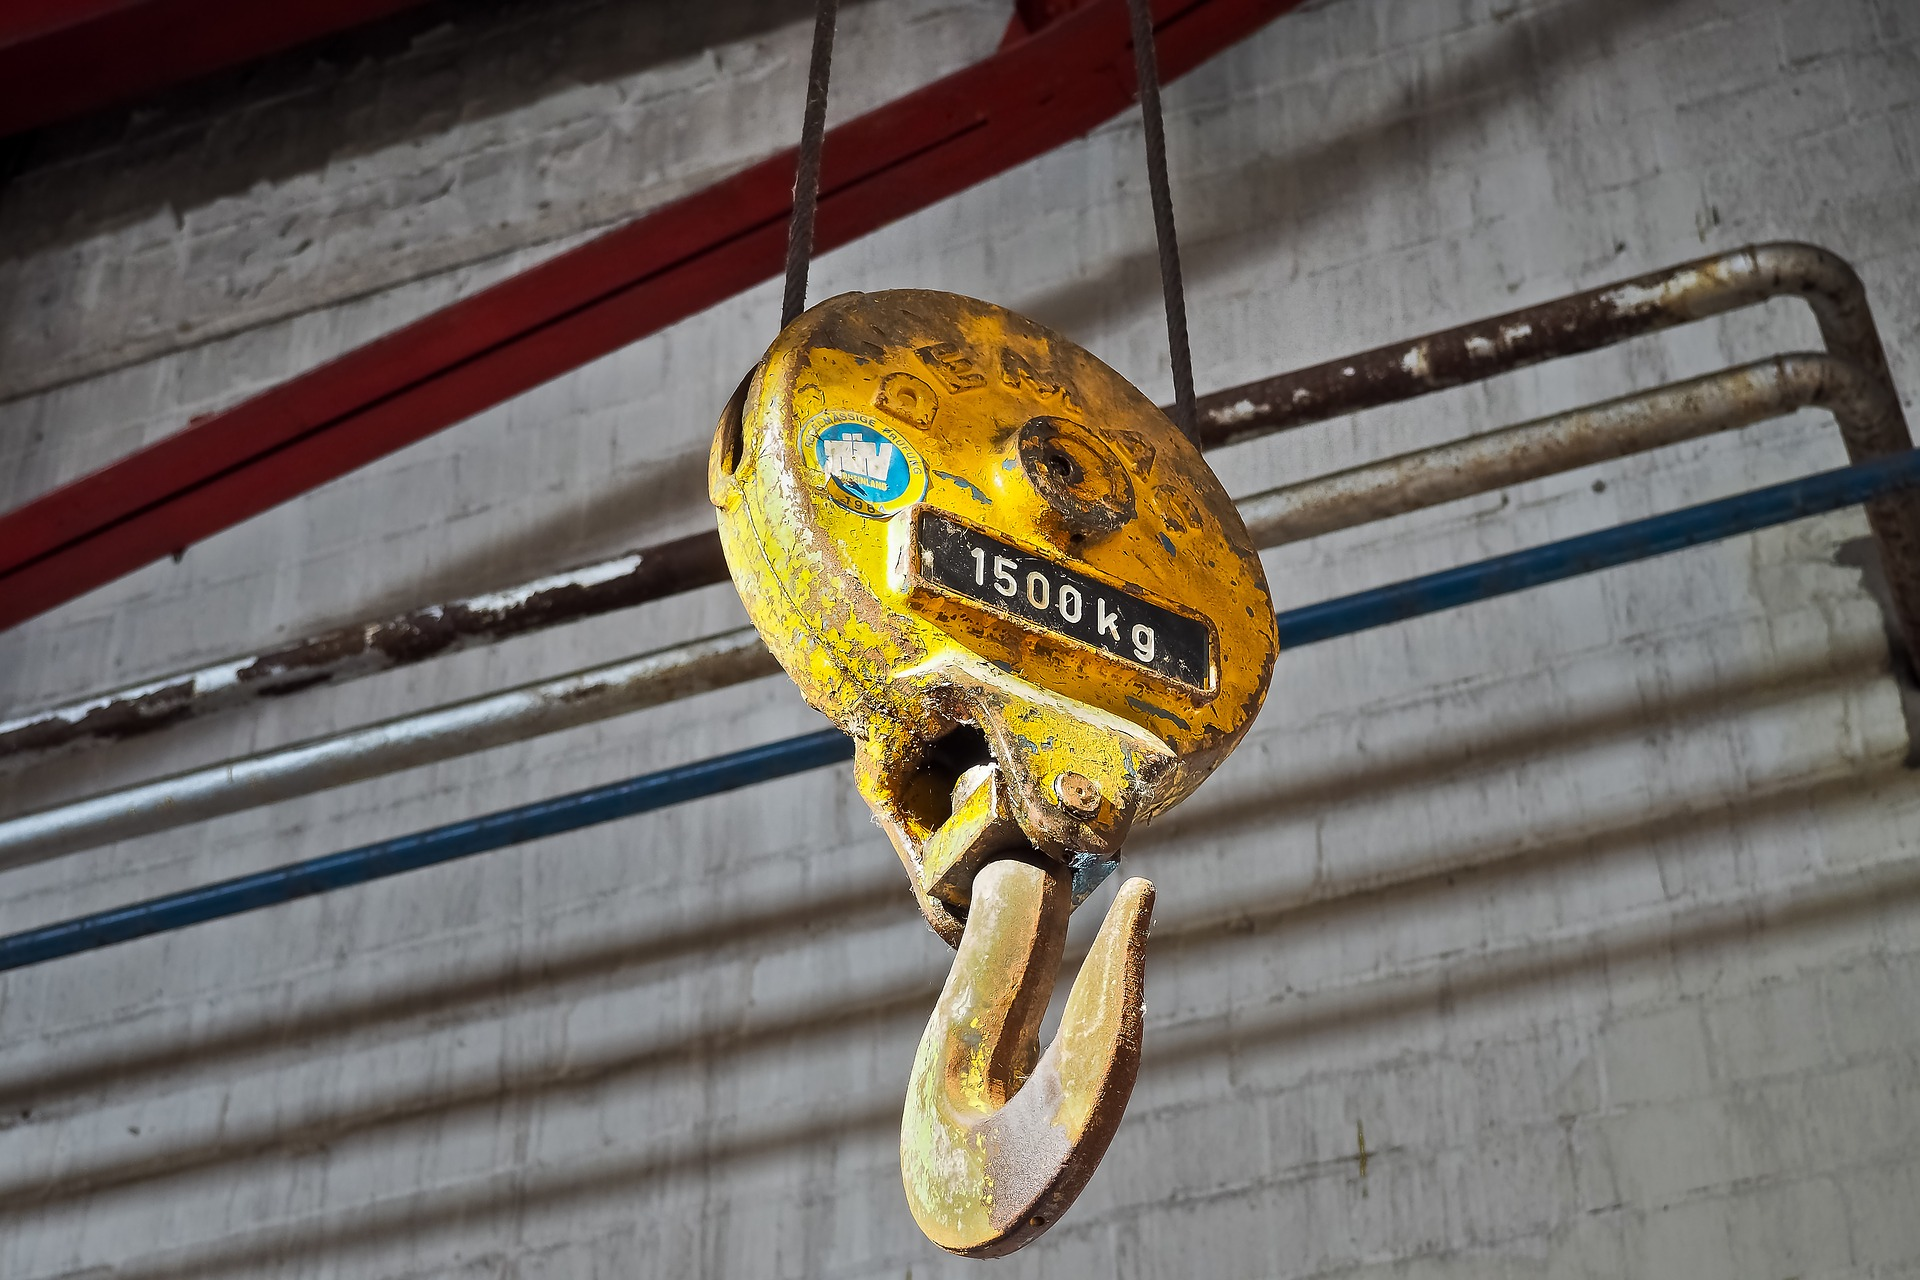 Crane hook with 15000kg load capacity